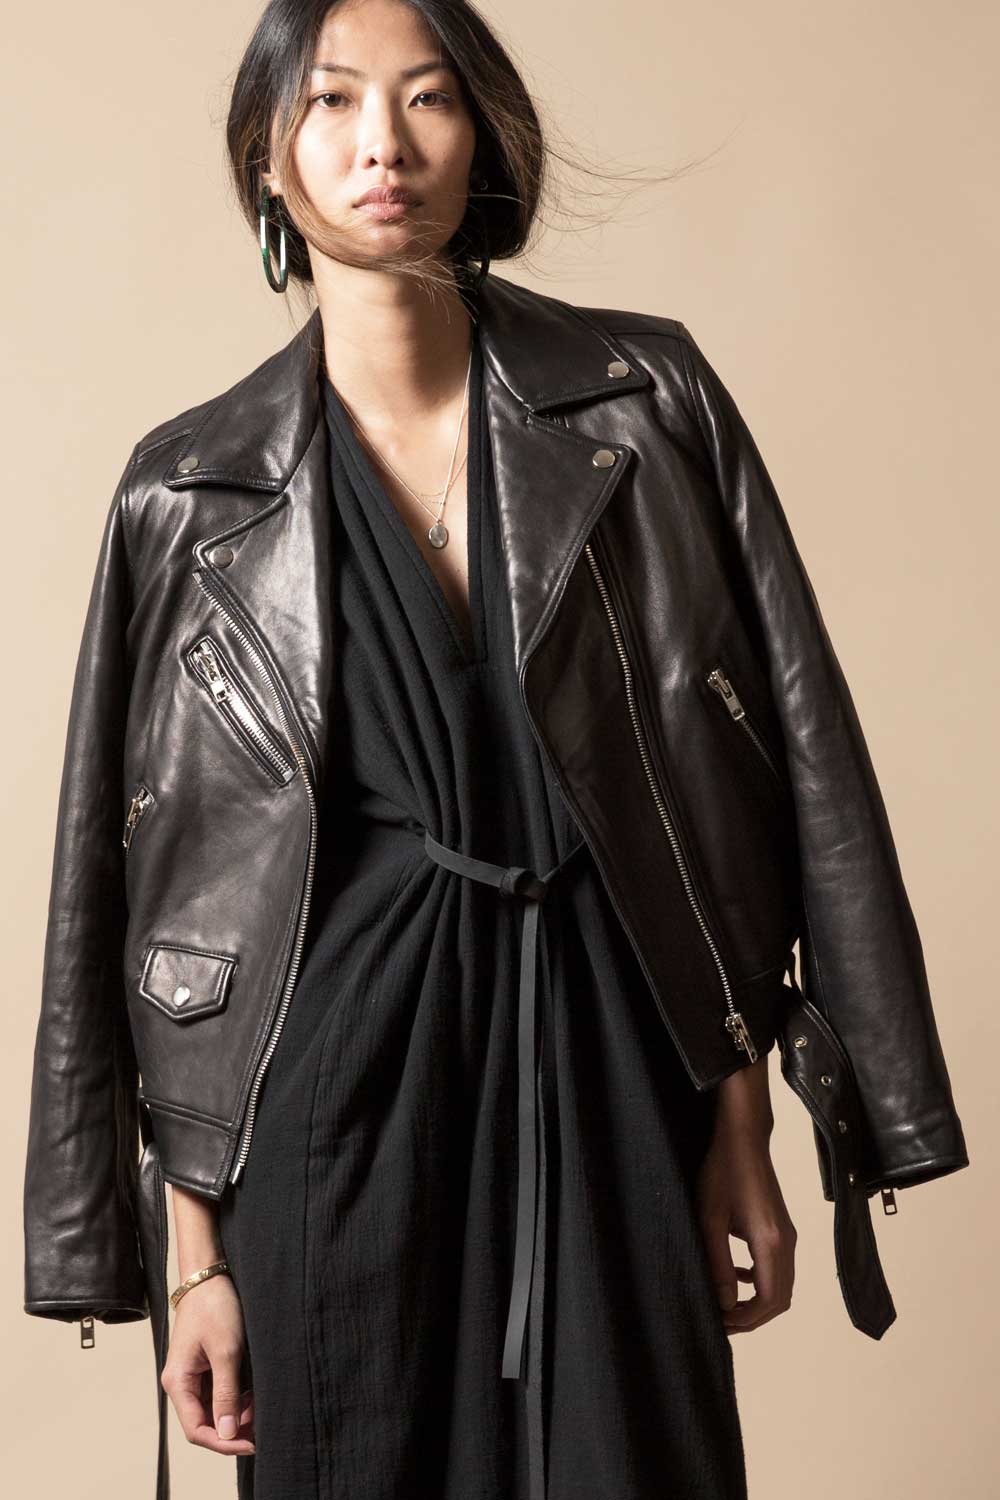 PRIMARY + LOOKAST Full Length Leather Moto Jacket